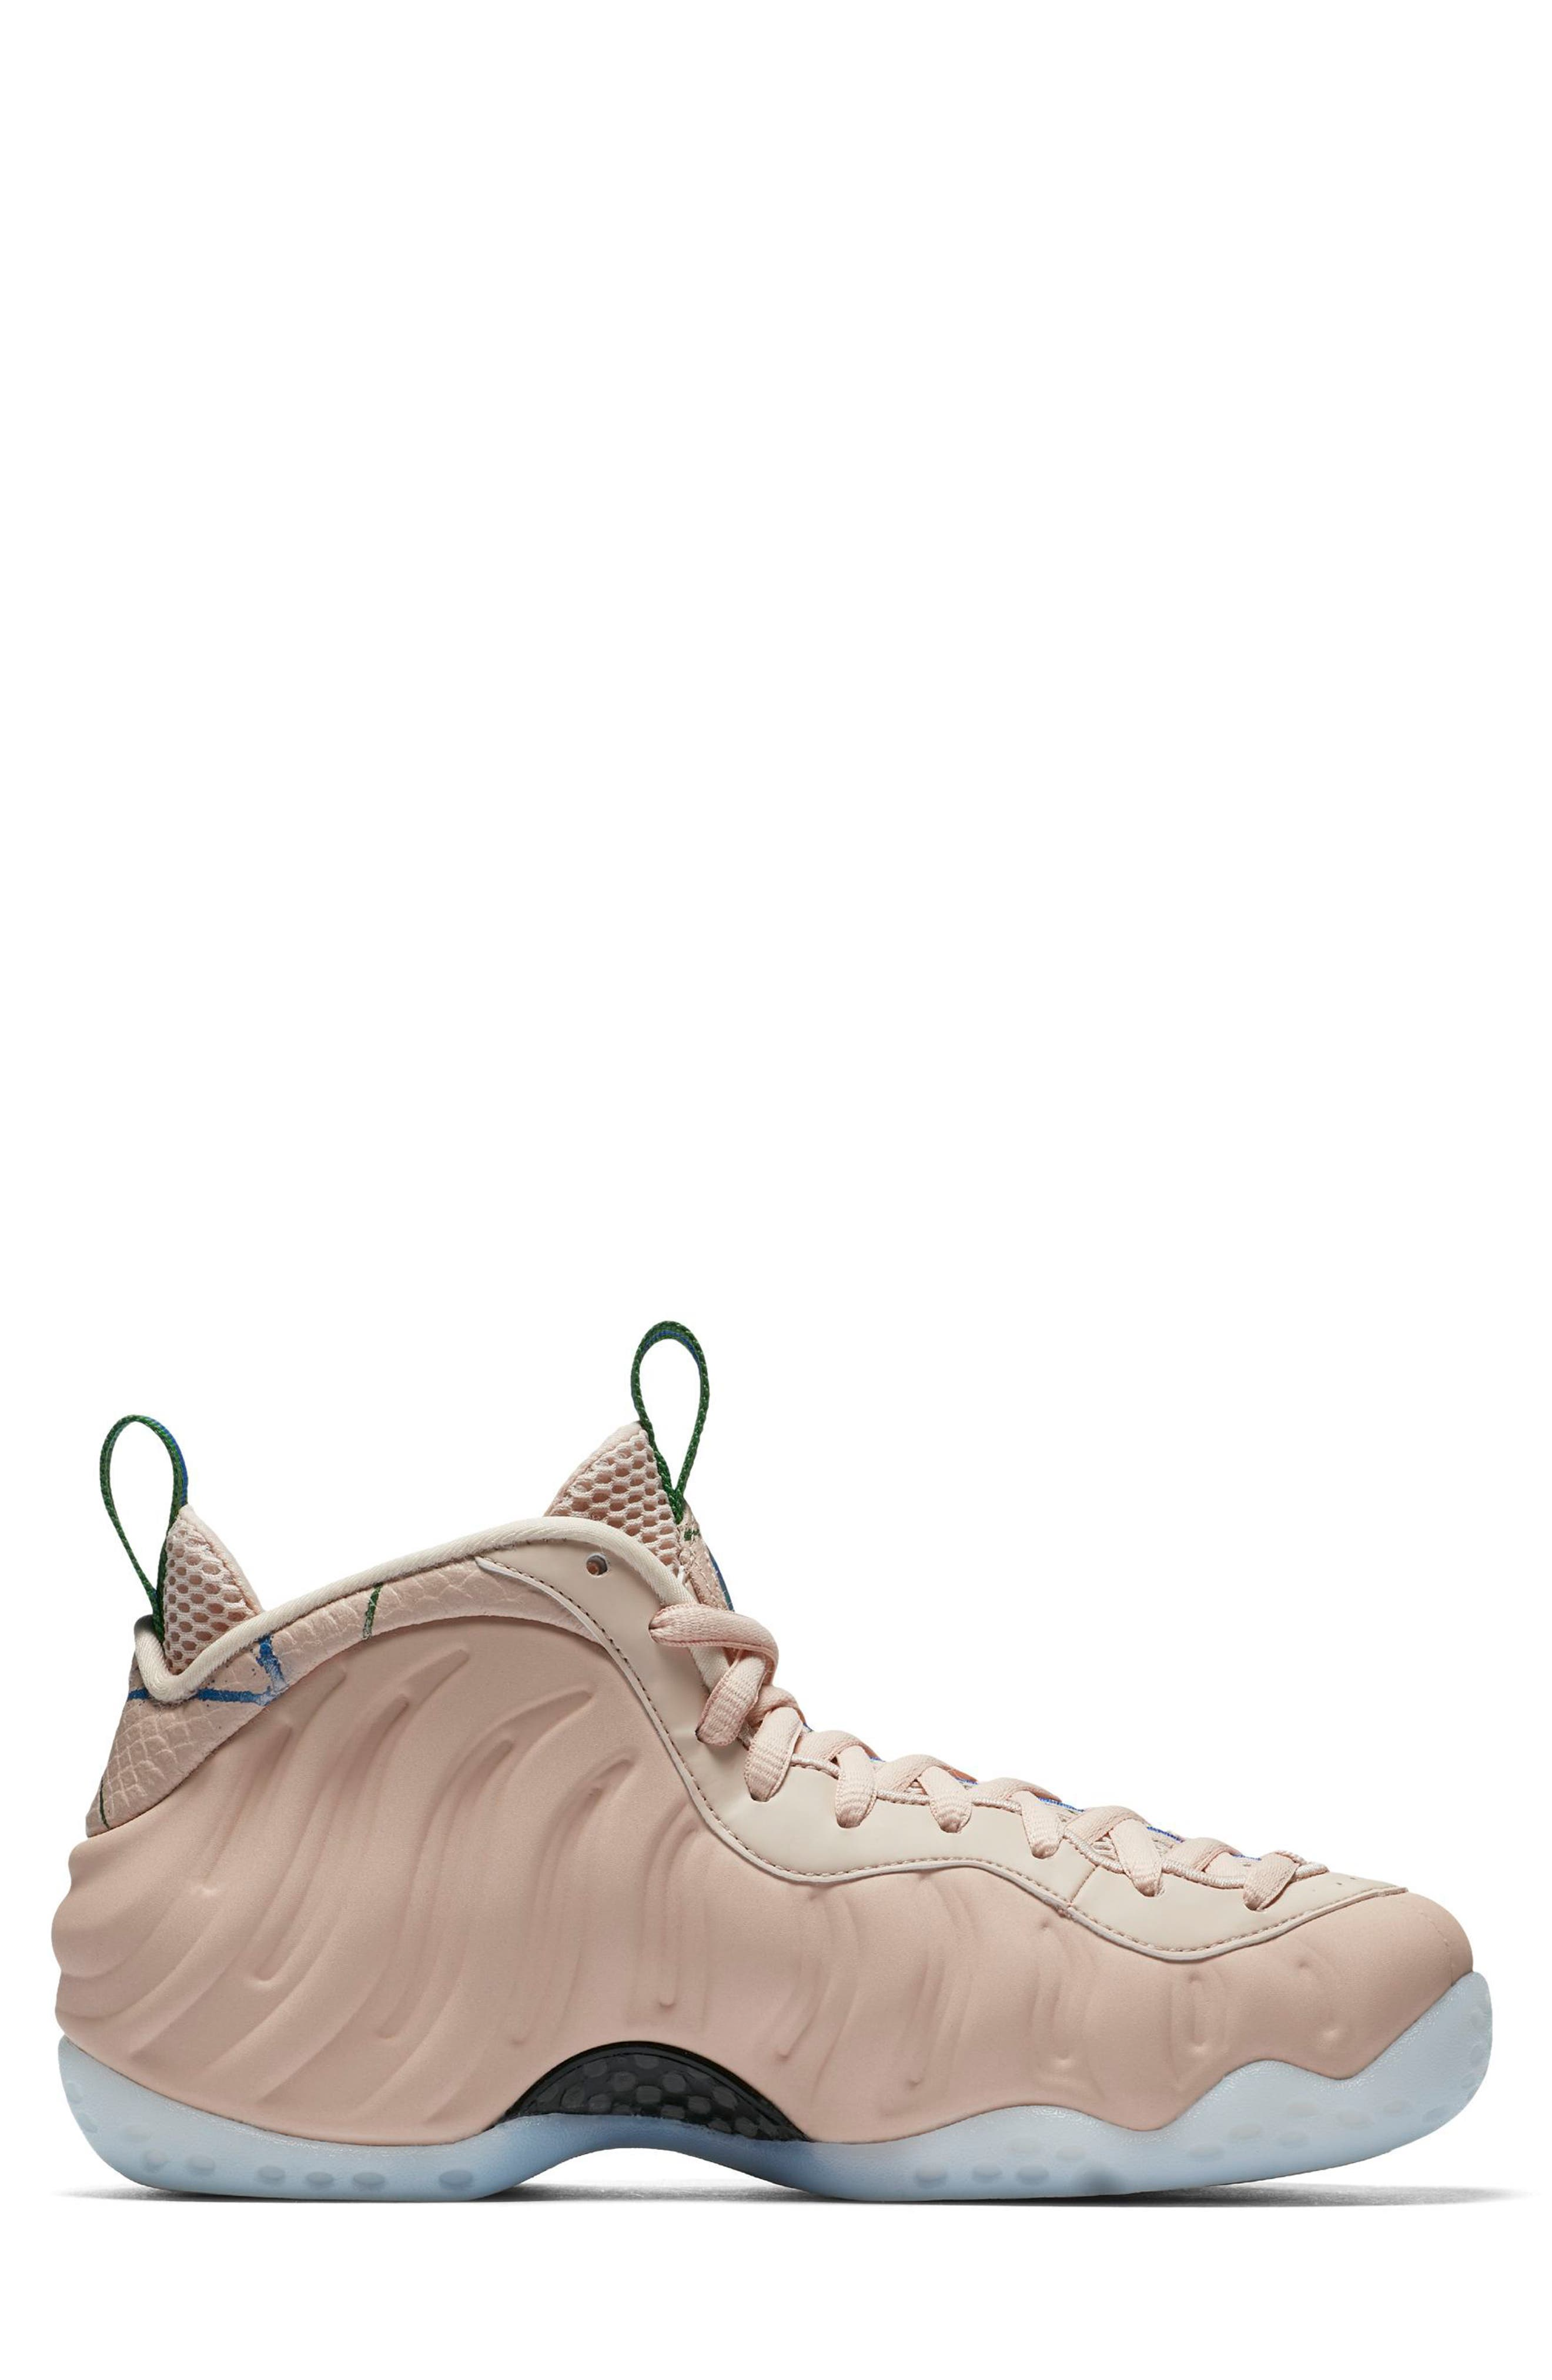 Air Foamposite One Sneaker,                             Alternate thumbnail 3, color,                             Particle Beige/ White